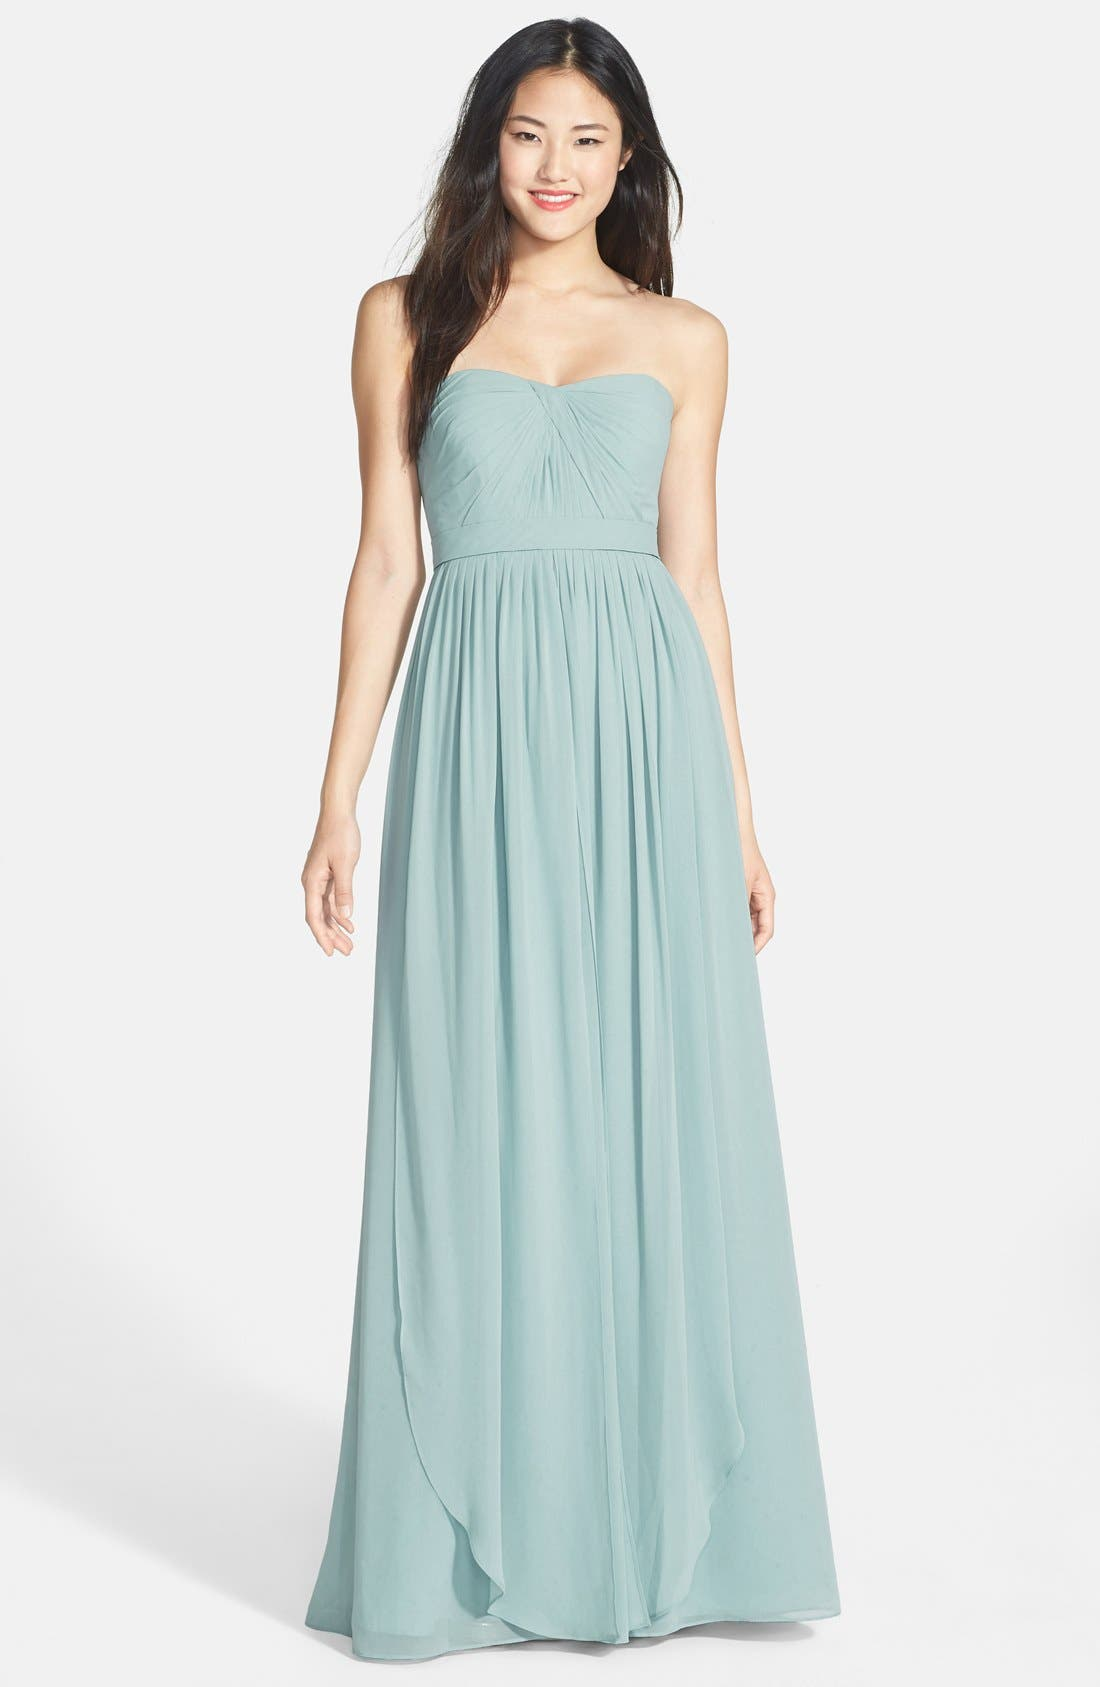 Alternate Image 1 Selected - Jenny Yoo 'Aidan' Convertible Strapless Chiffon Gown